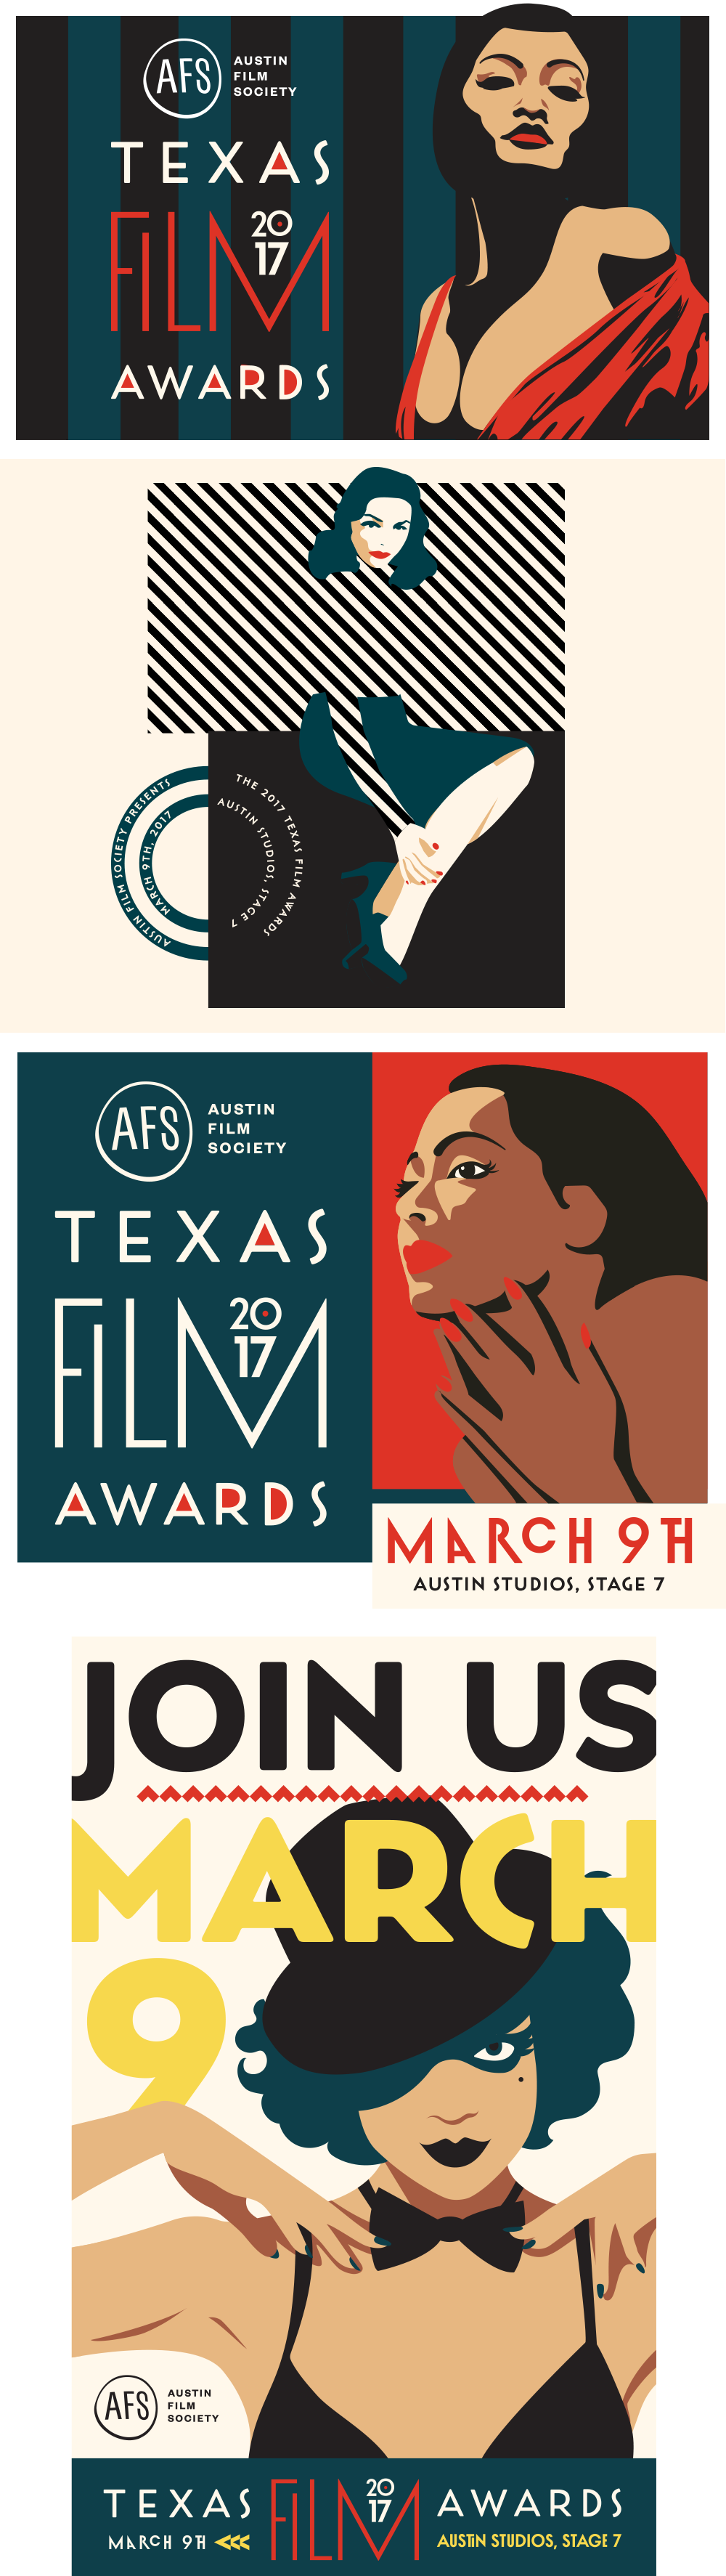 Branding for the Texas Film Awards by Five and Four